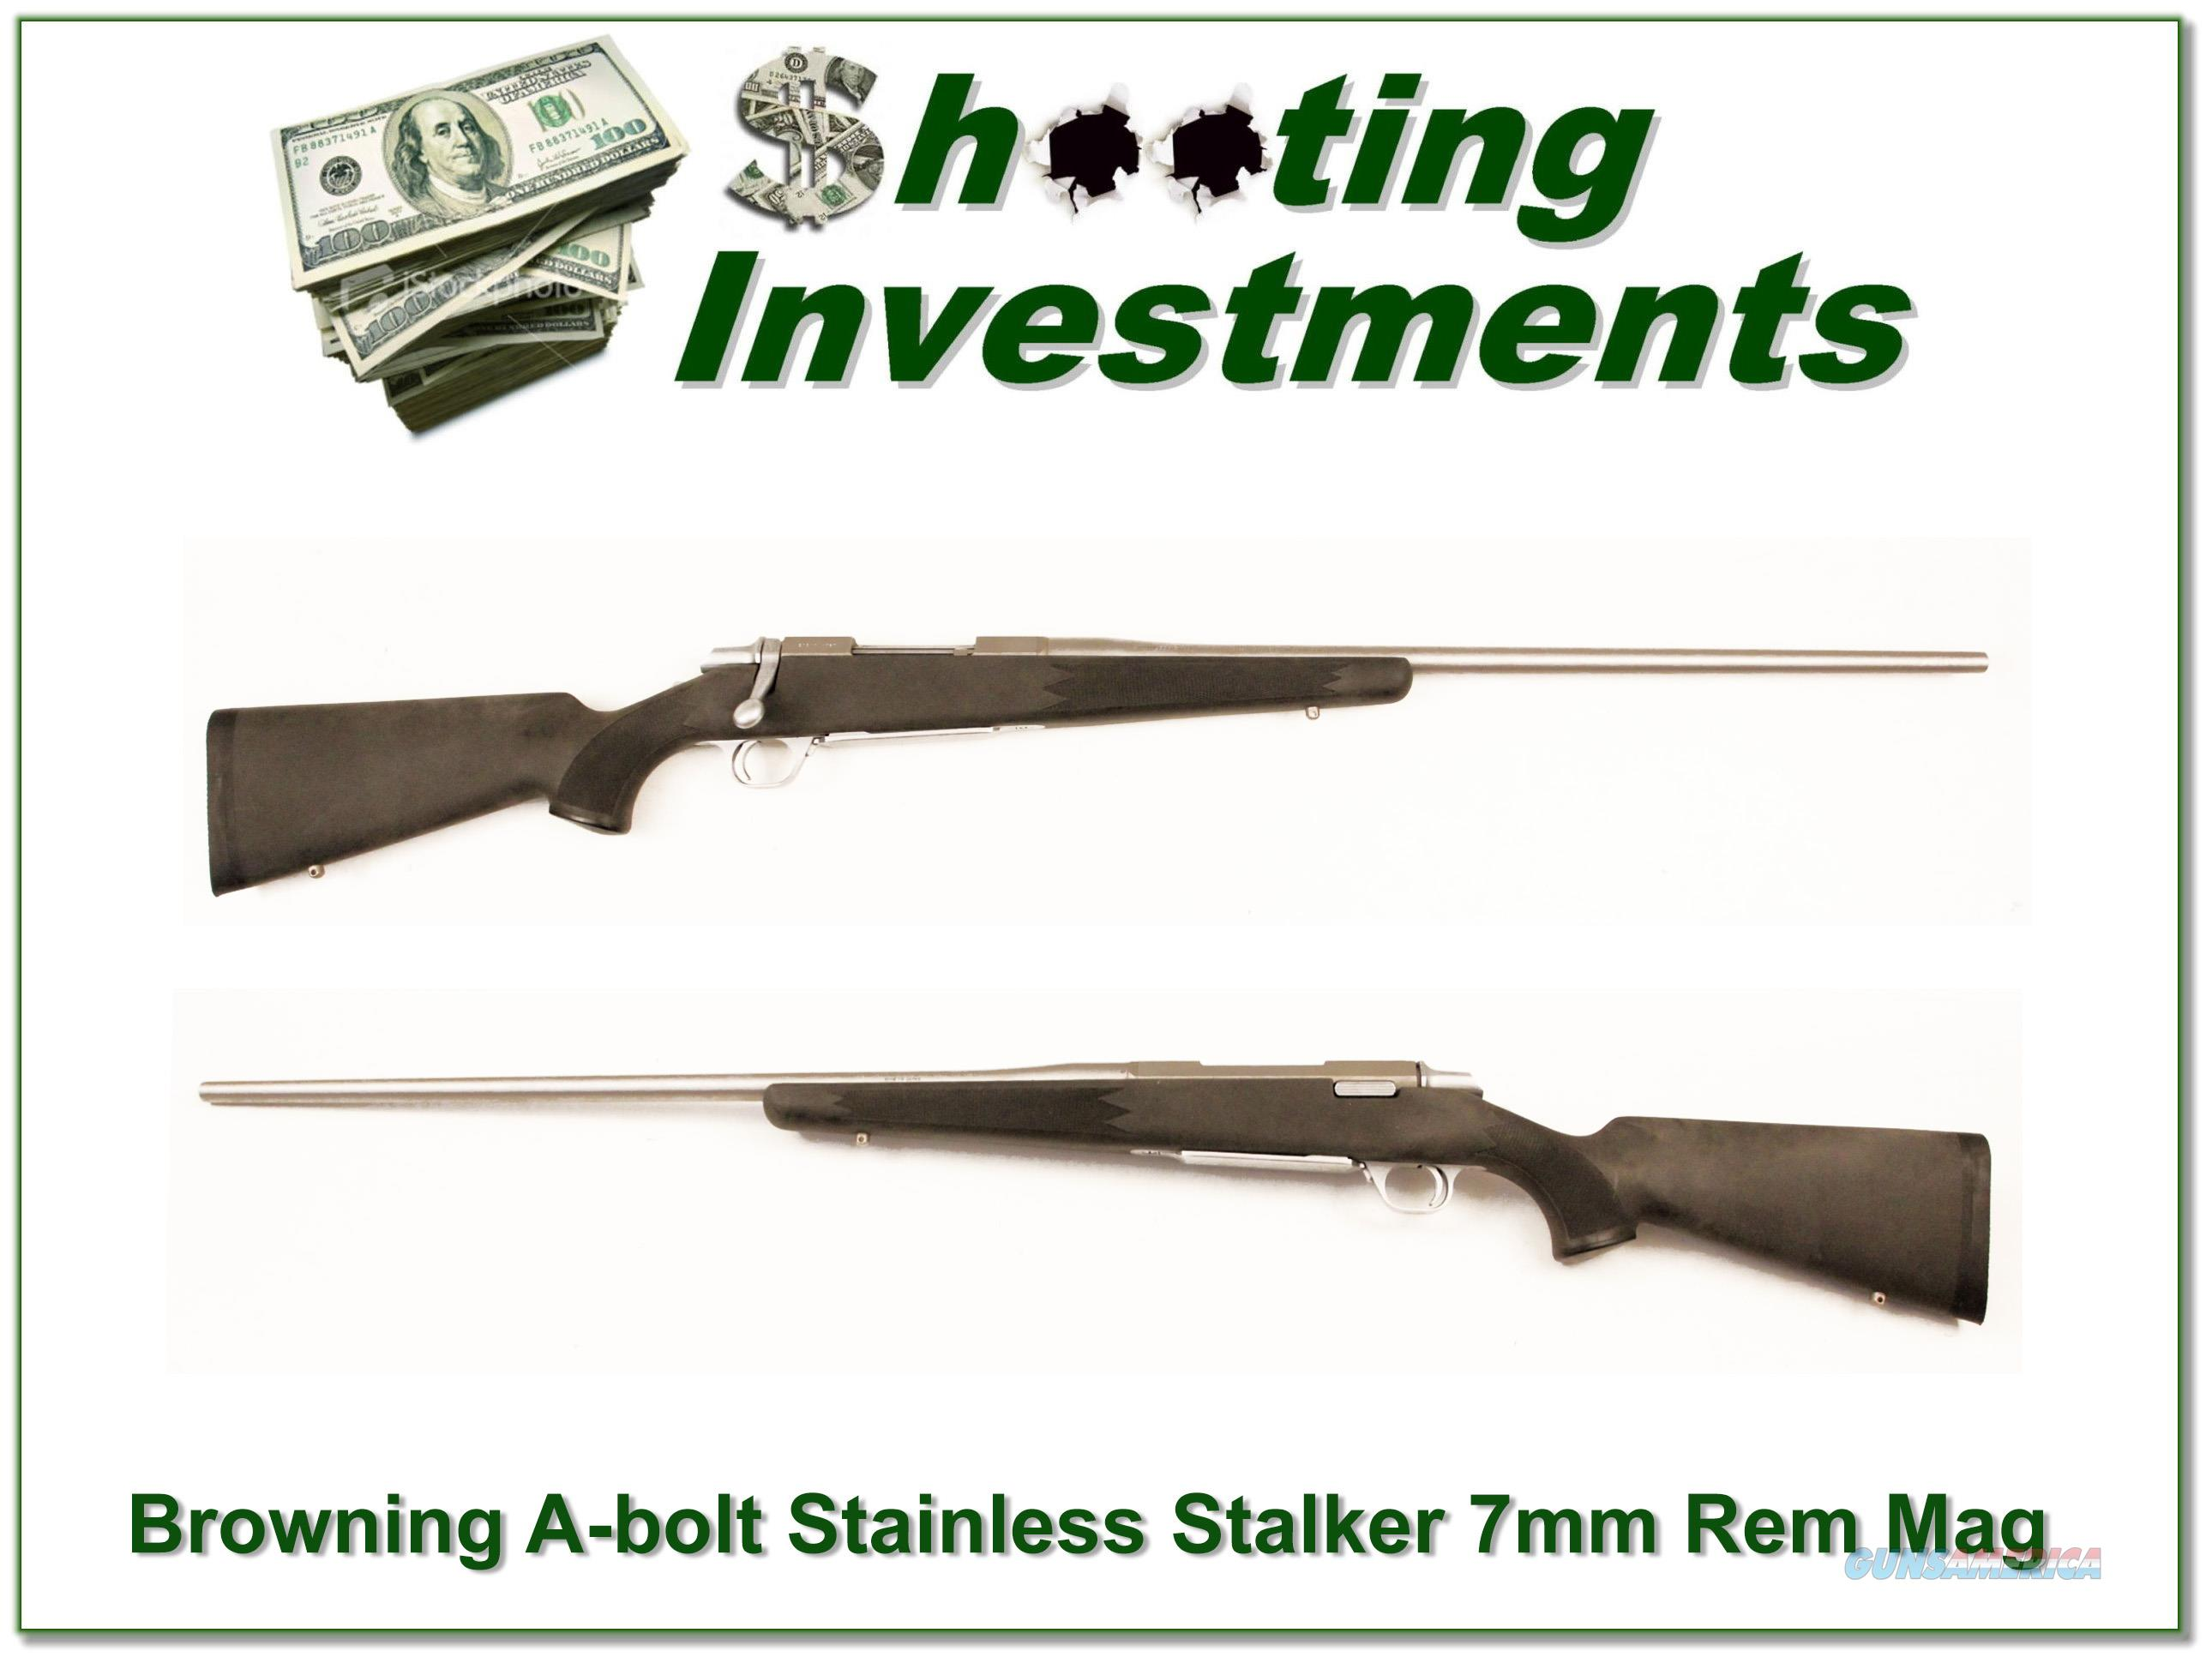 Browning A-bolt Stainless Stalker 26in 7mm Rem Mag  Guns > Rifles > Browning Rifles > Bolt Action > Hunting > Stainless